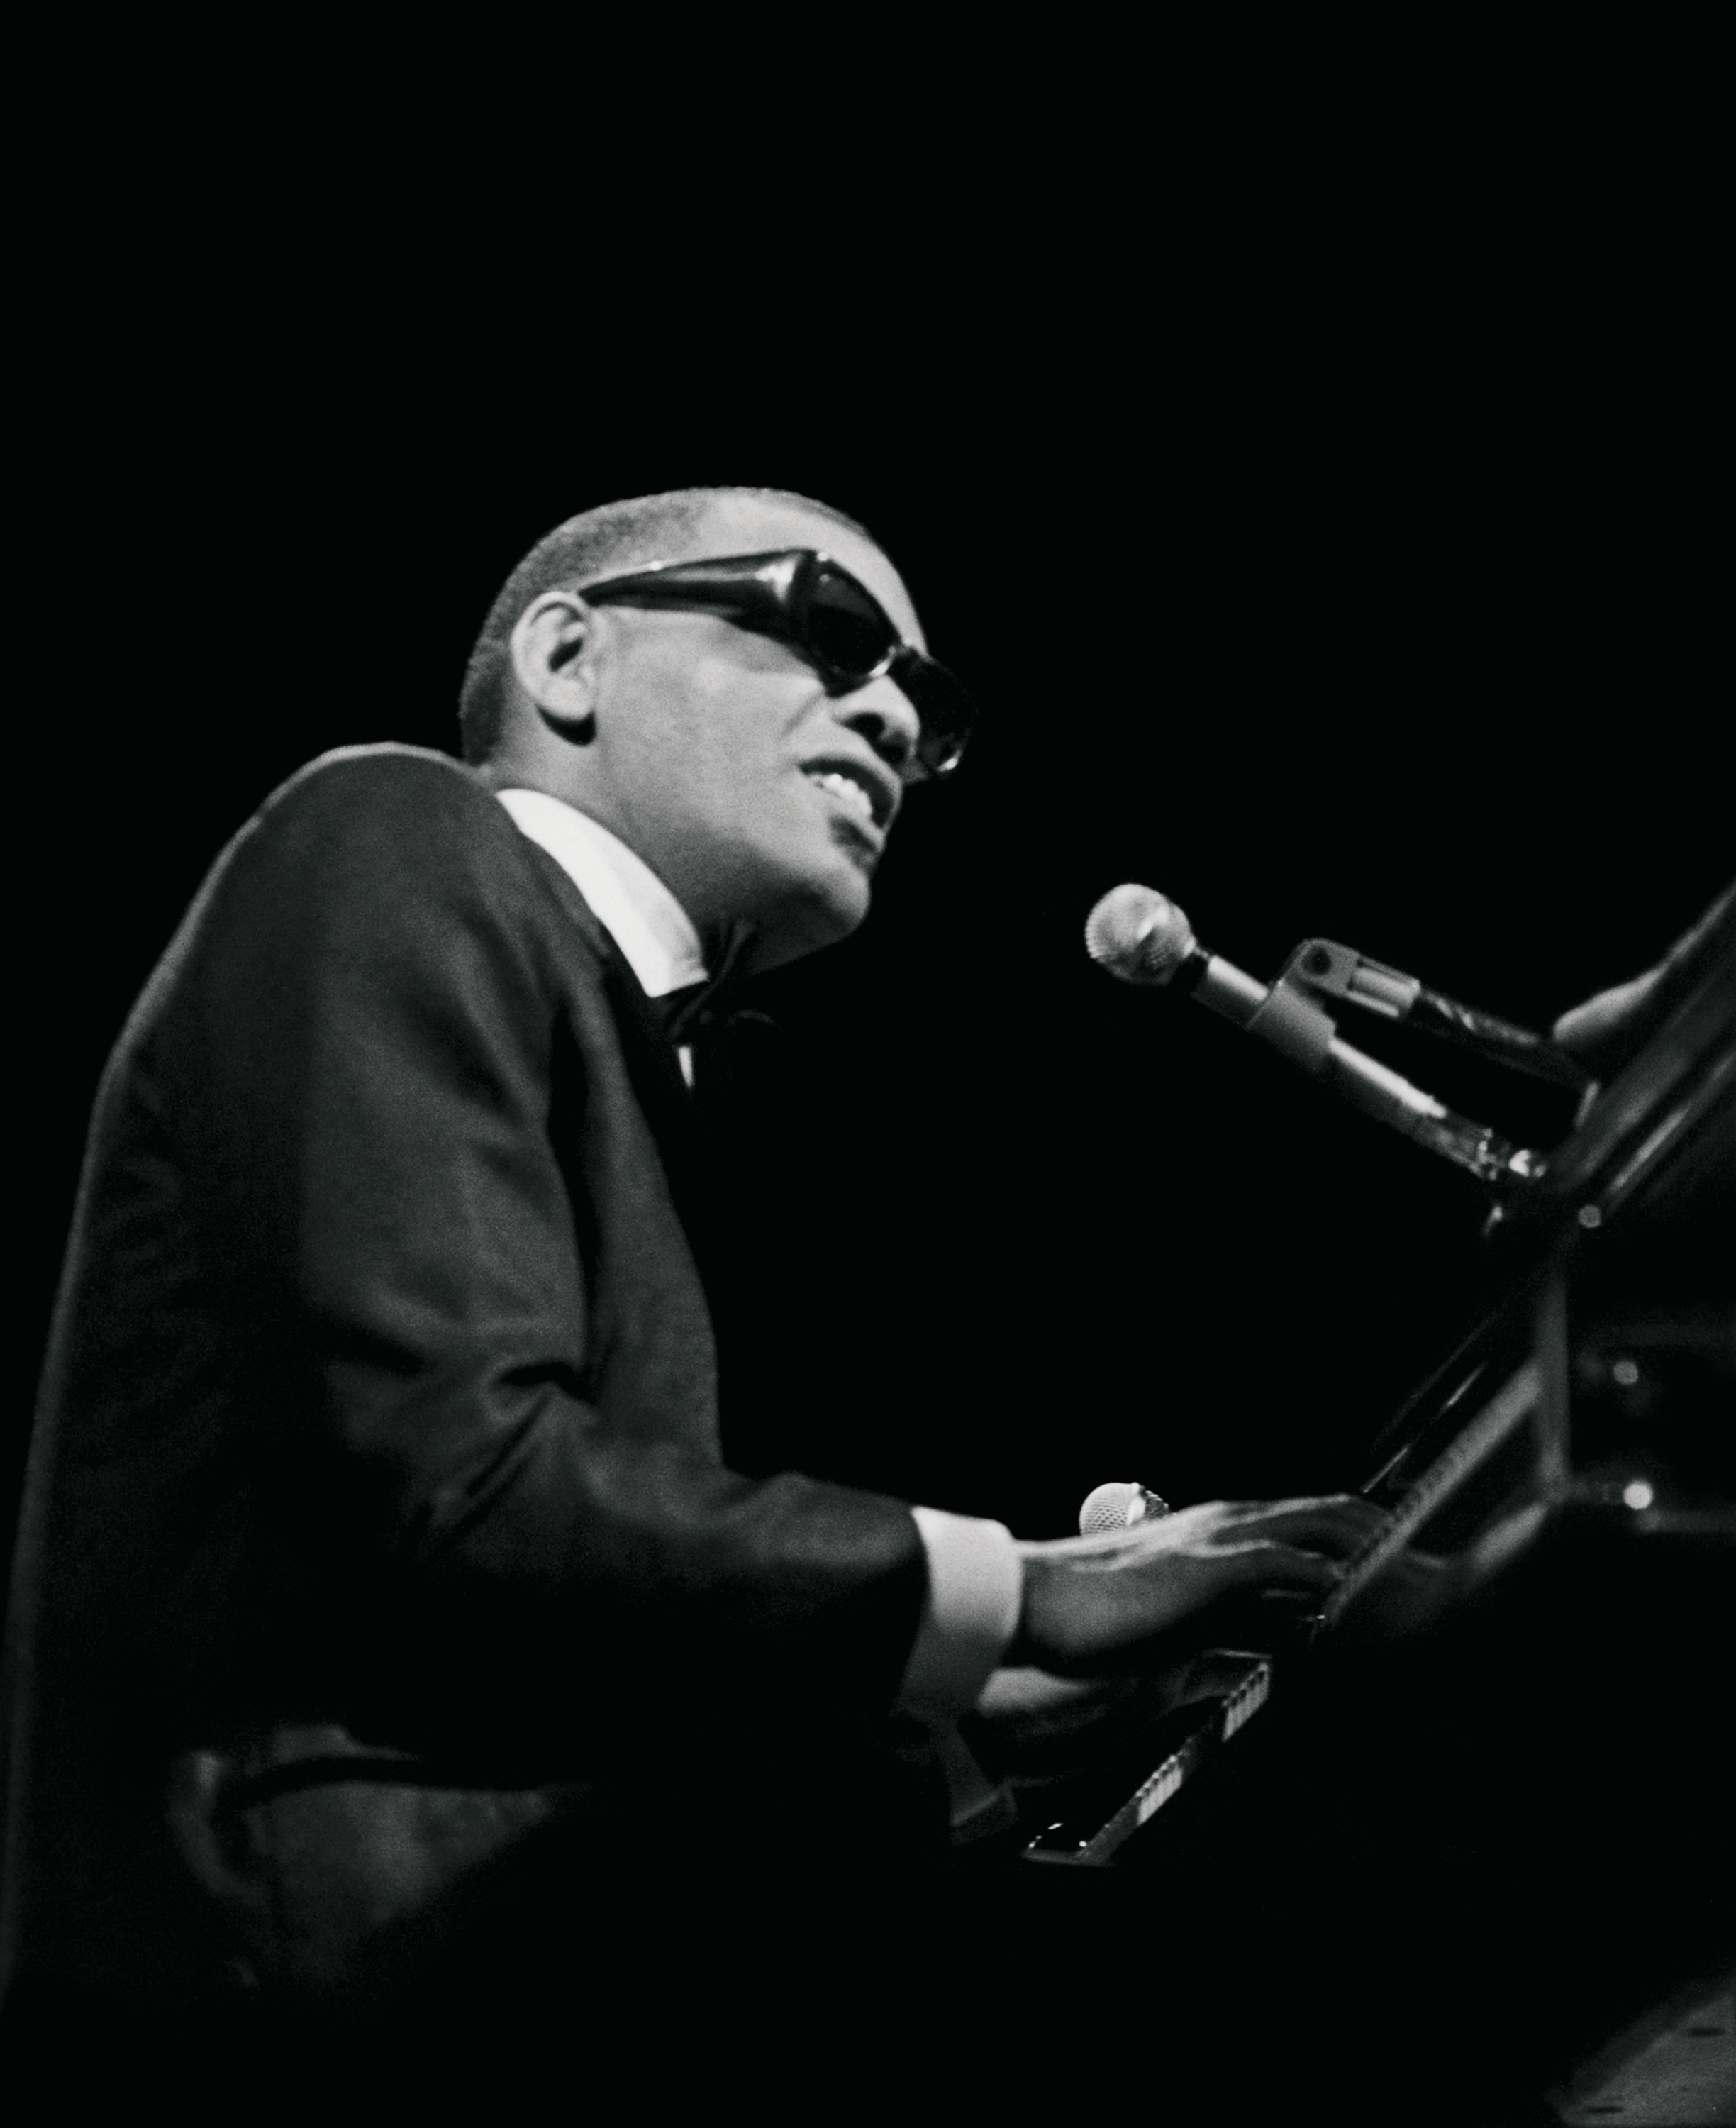 ray charles motherray charles say no more, ray charles скачать, ray charles mp3, ray charles mess around, ray charles слушать, ray charles georgia on my mind, ray charles a song for you, ray charles фильм, ray charles песни, ray charles what'd i say, ray charles mother, ray charles i've got a woman, ray charles songs, ray charles wiki, ray charles what i say, ray charles if i could, ray charles mess around скачать, ray charles mono mono скачать, ray charles биография, ray charles википедия